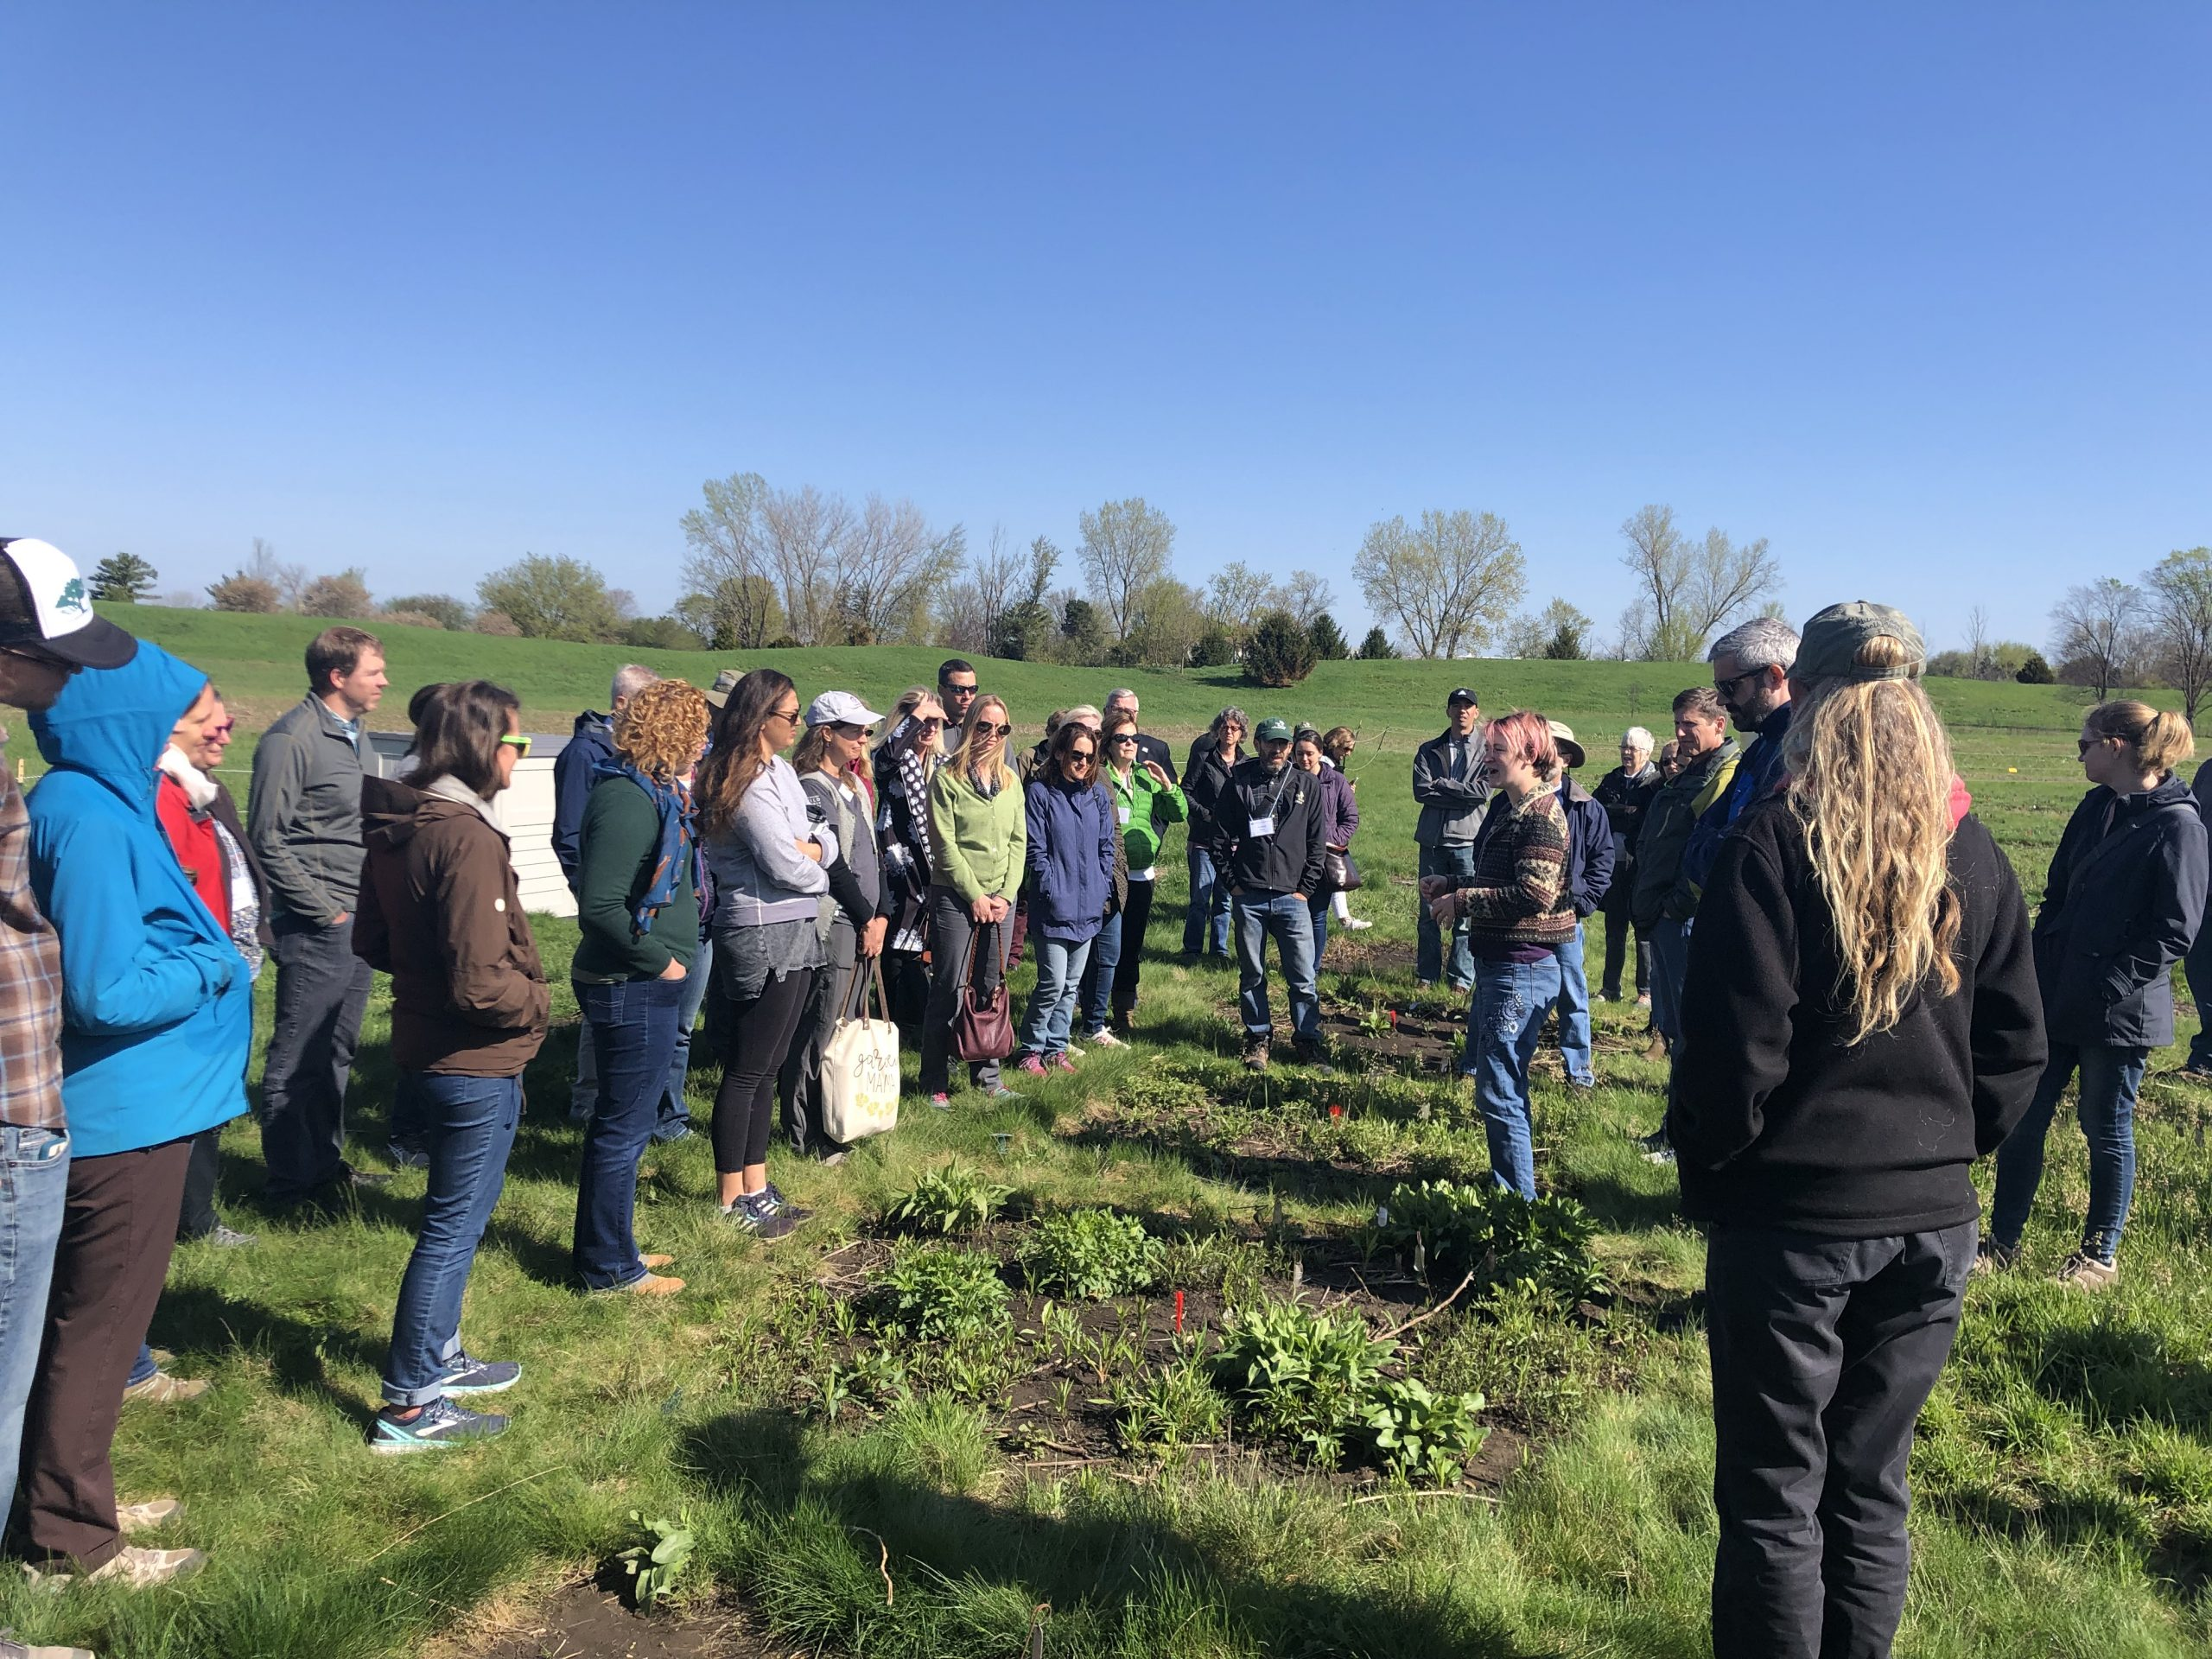 During Saturday's field trip, Morton Arboretum staff explained the complicated National Science Foundation funded prairie restoration experiment.